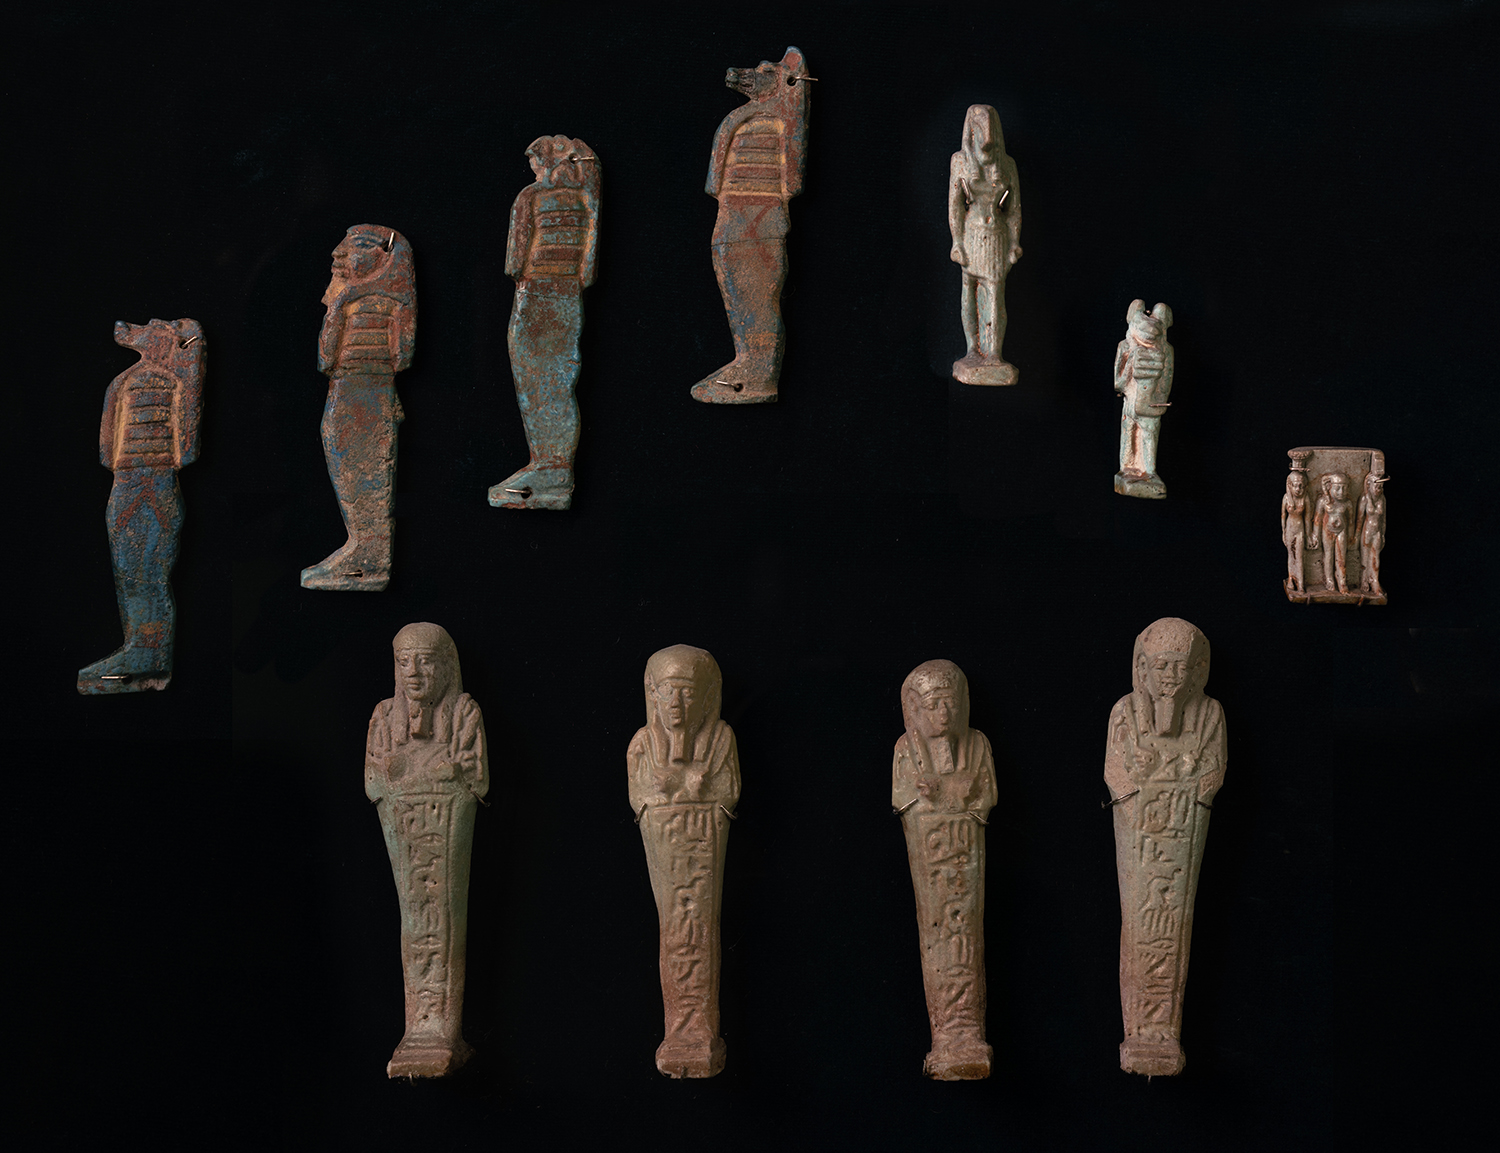 Figure 2: Some objects buried in the tomb had been used by the deceased during life, but other tomb goods like shabtis, canopic jars, and certain amulets were made specifically for the burial.